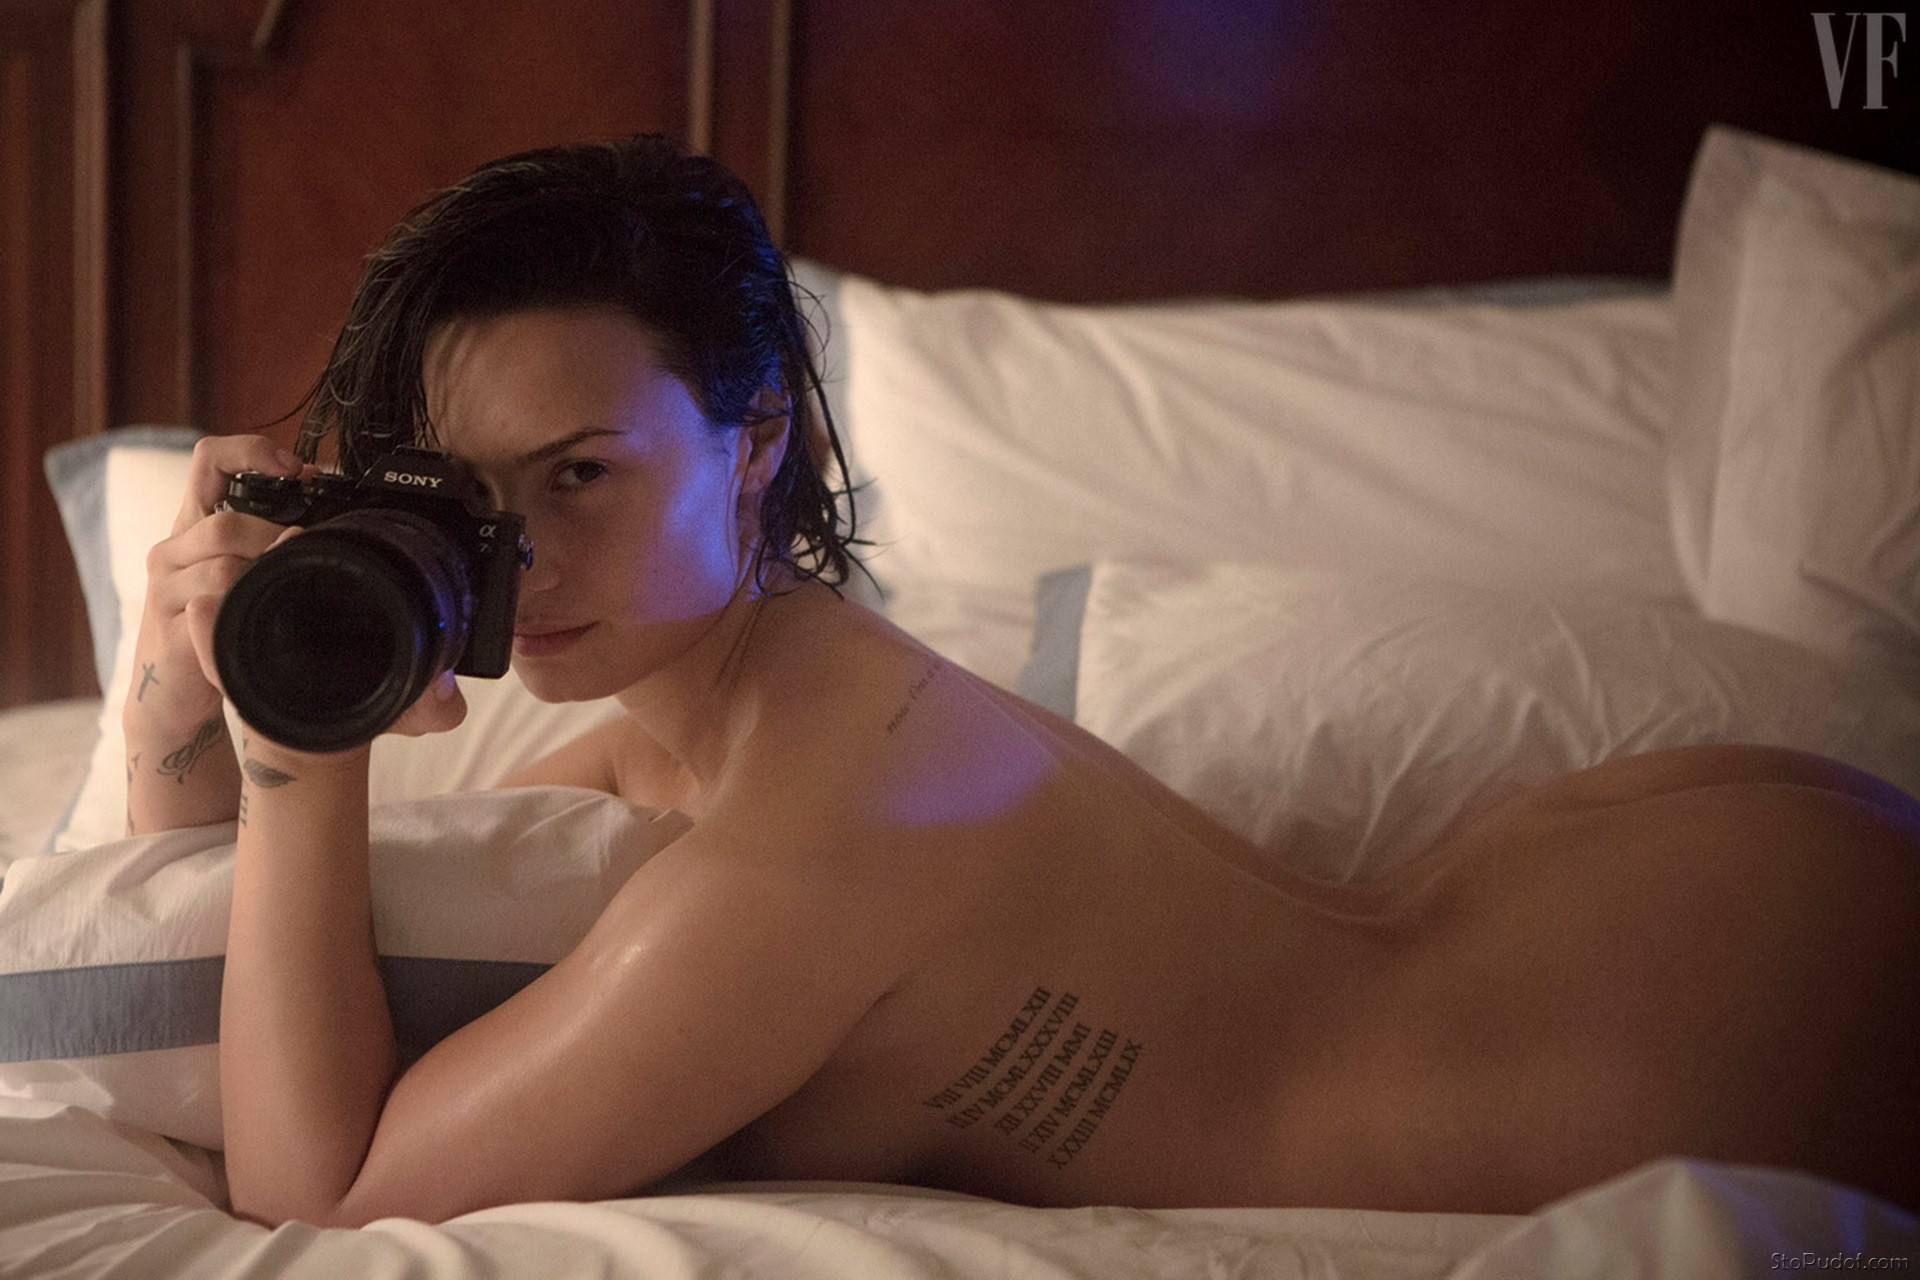 photos Demi Lovato naked - UkPhotoSafari